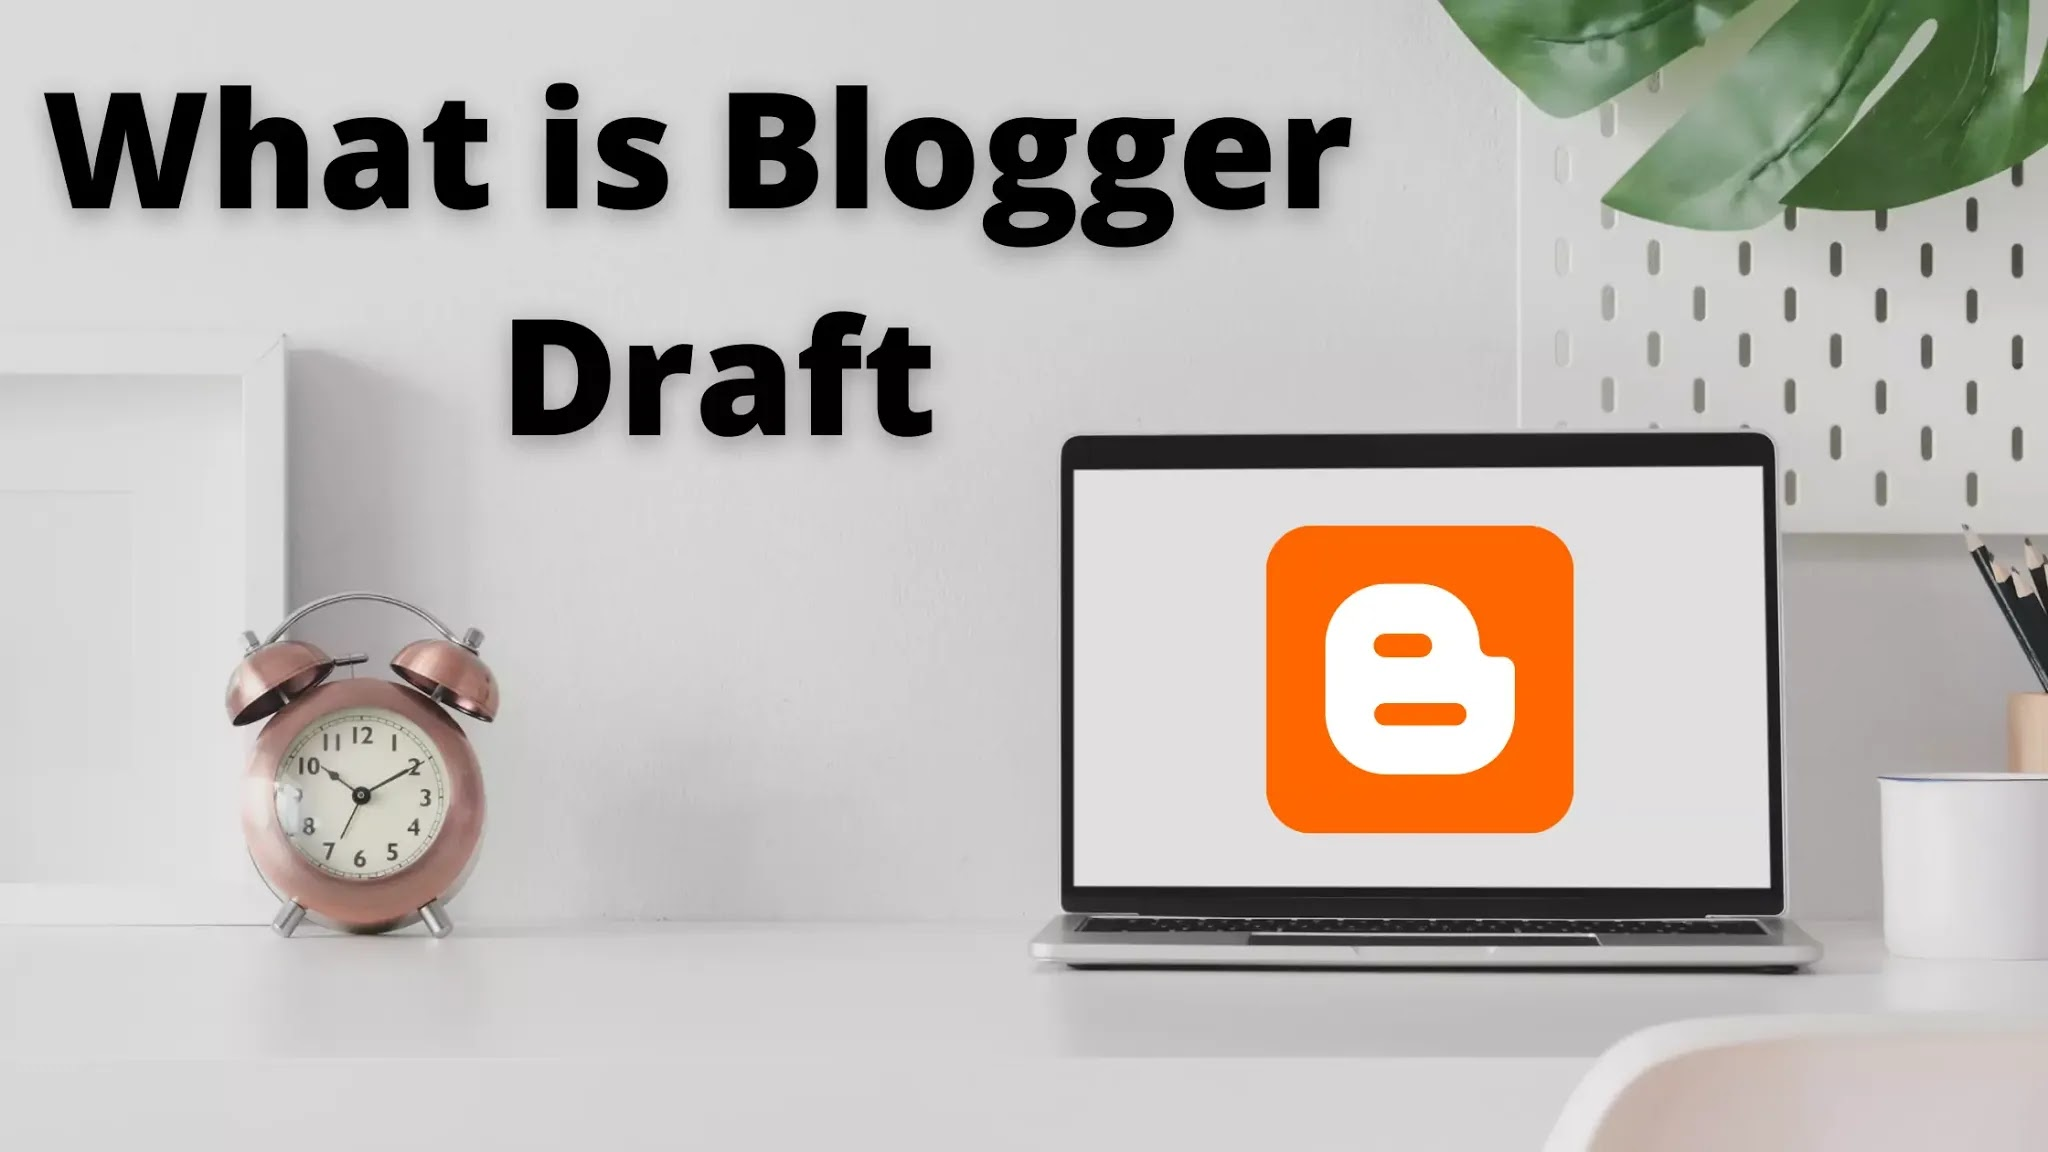 What is Blogger Draft